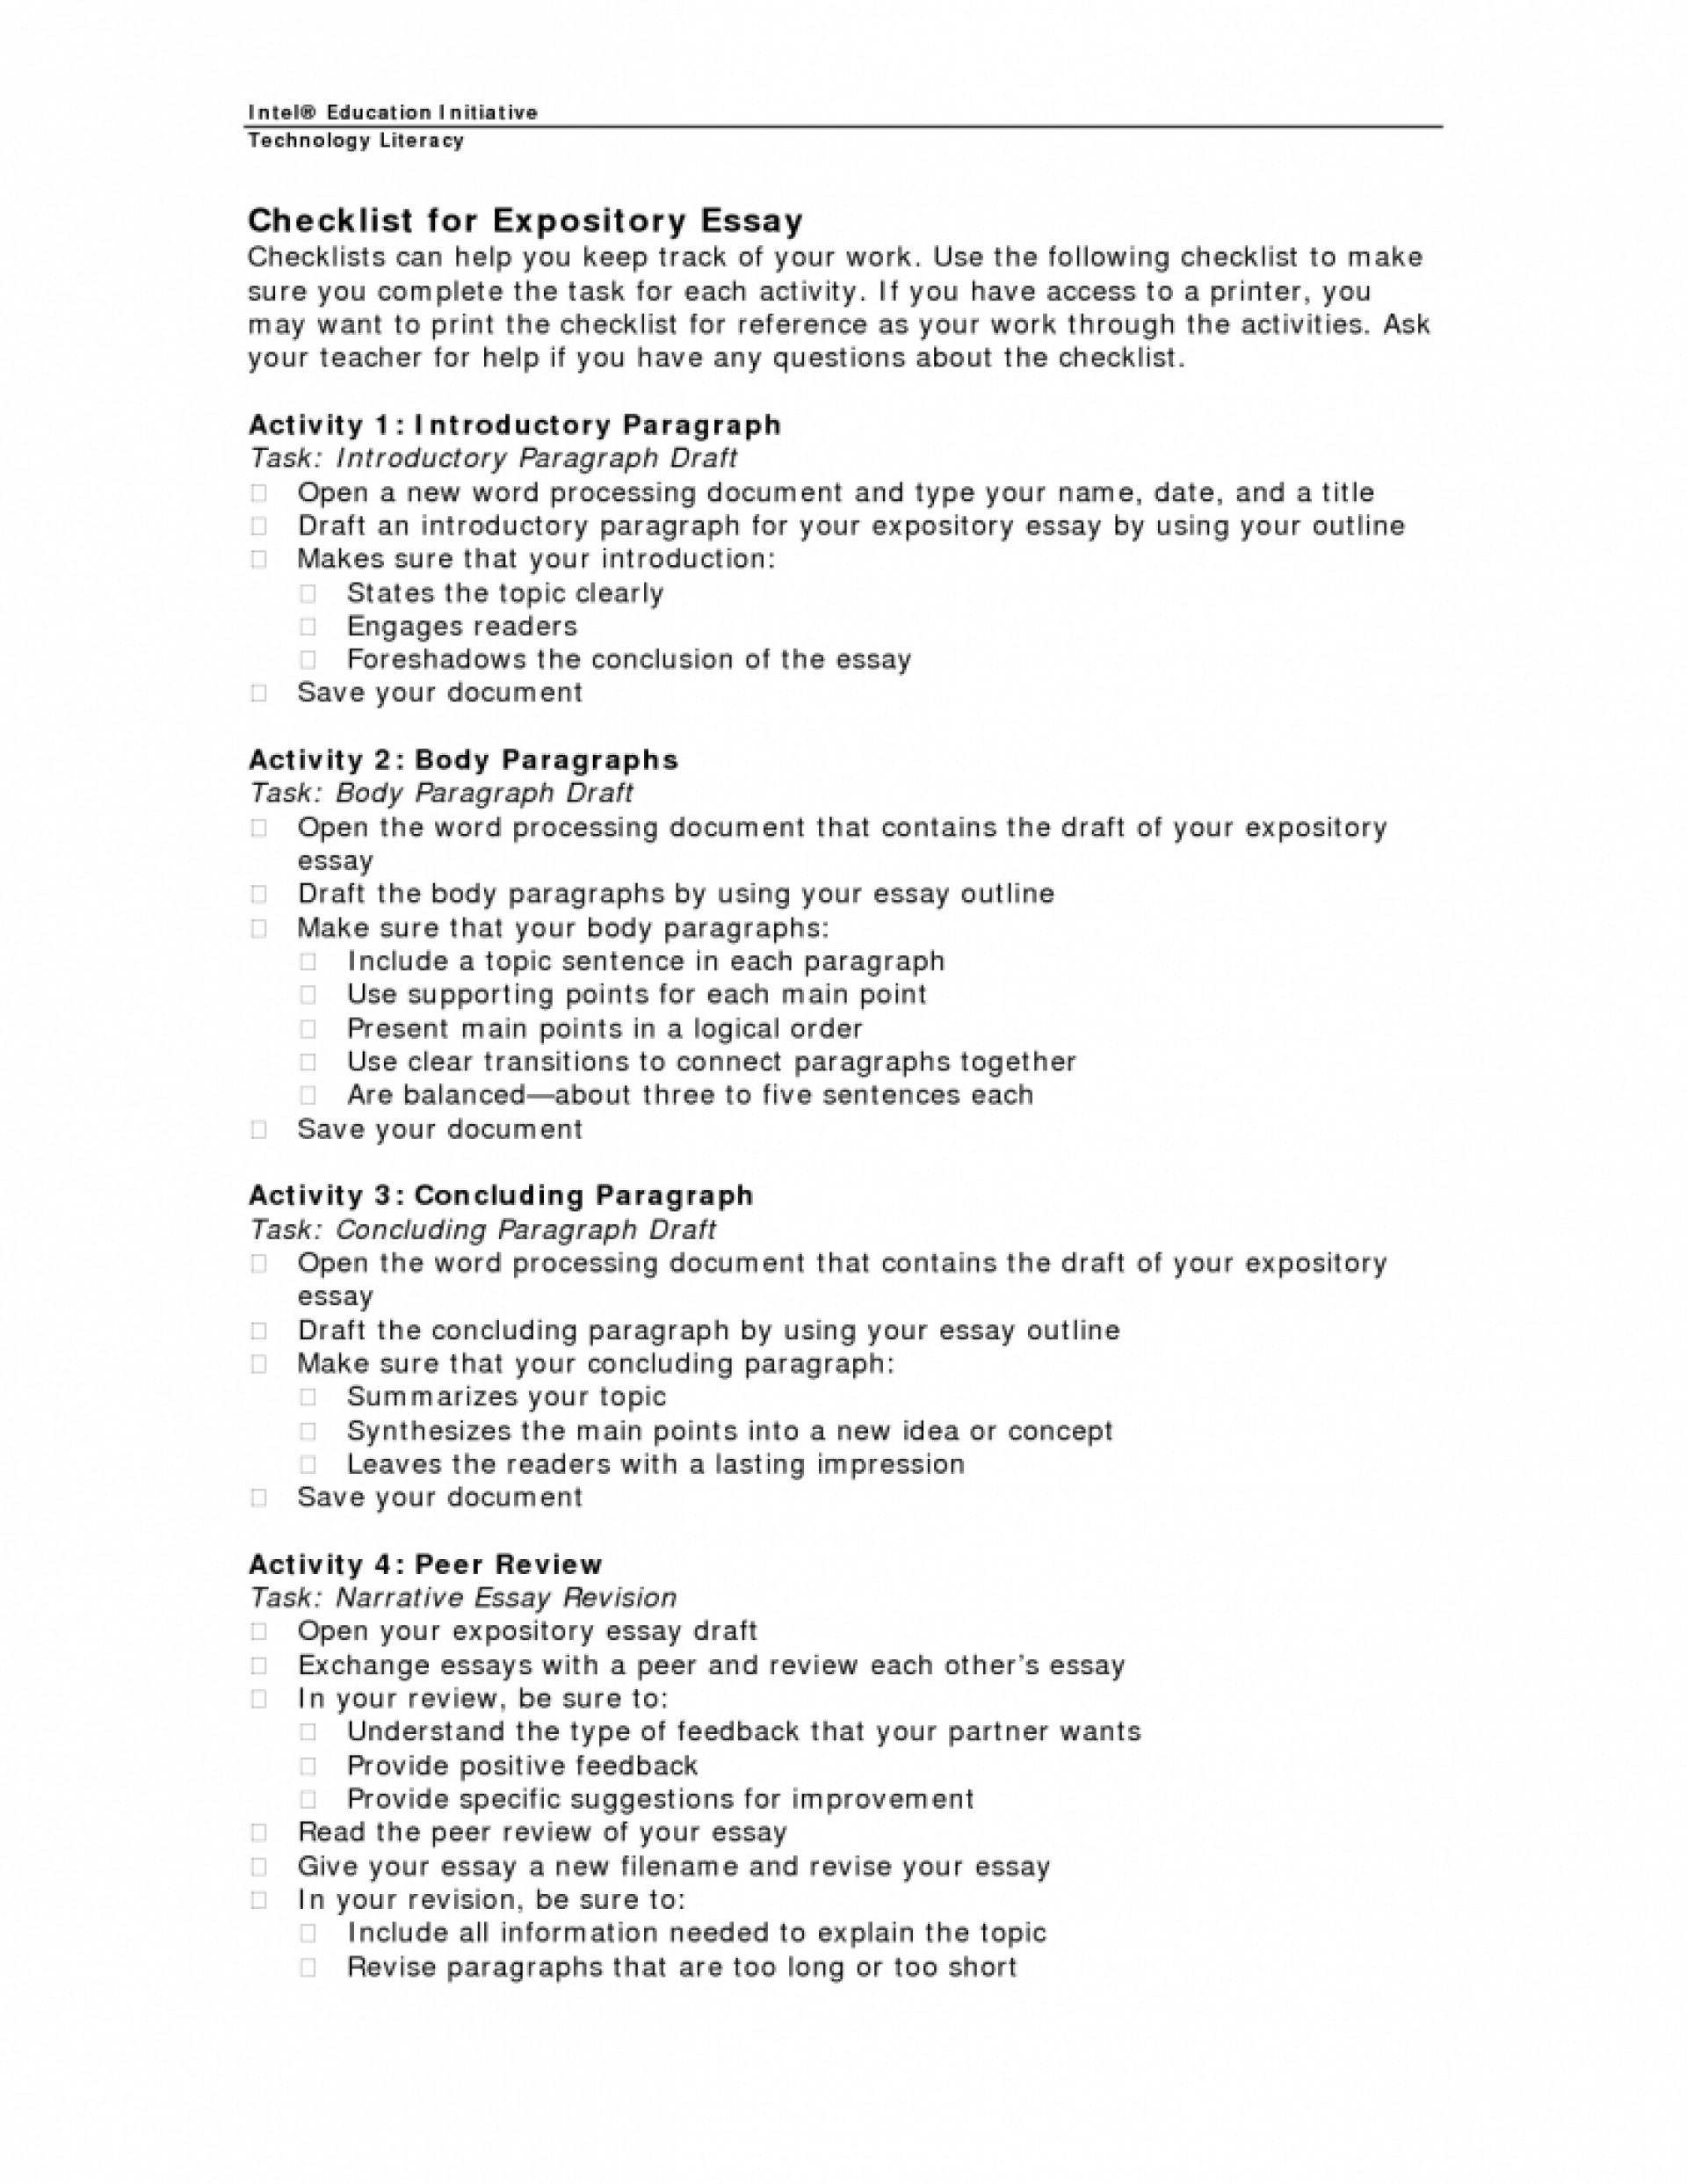 008 Expository Essay Checklist 791x1024 Example Informative Unforgettable Outline 5th Grade Examples 1920